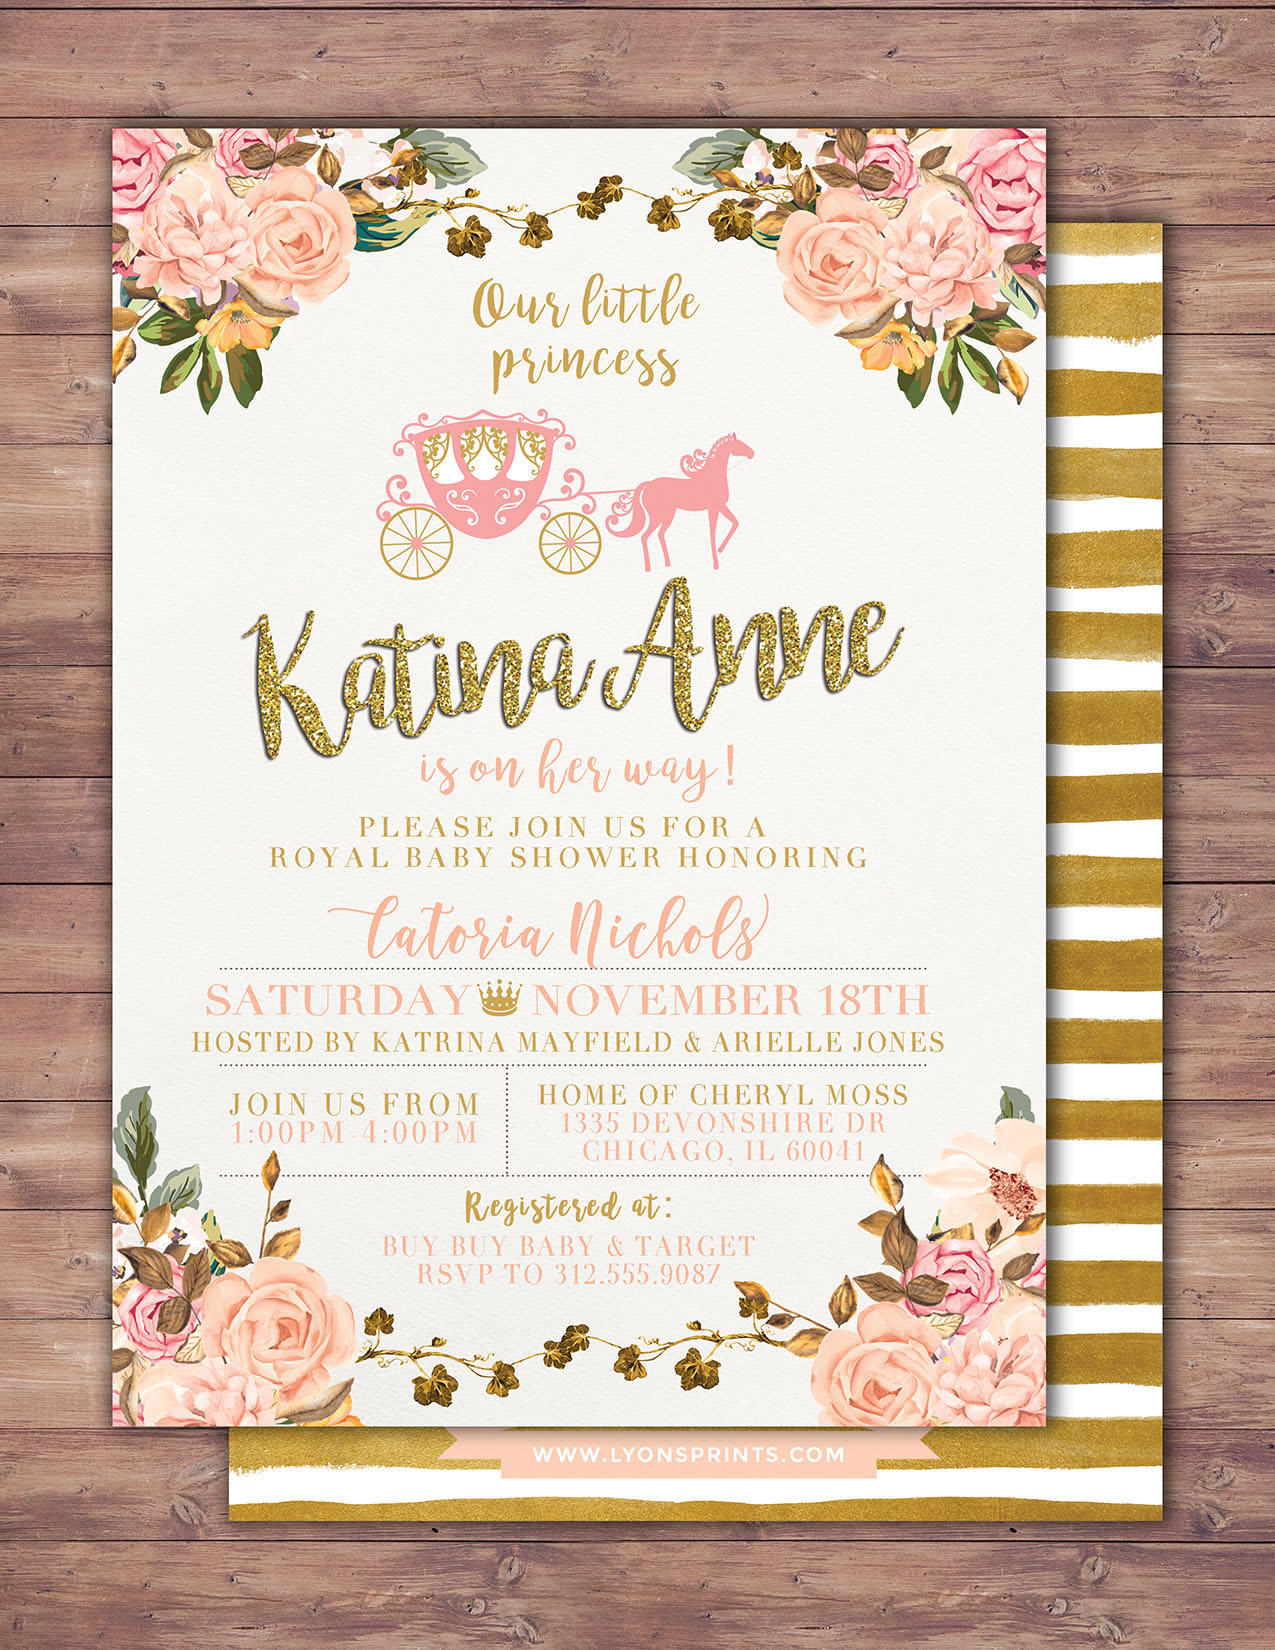 Princess Baby Shower Invitation Princess Carriage Baby Shower ...